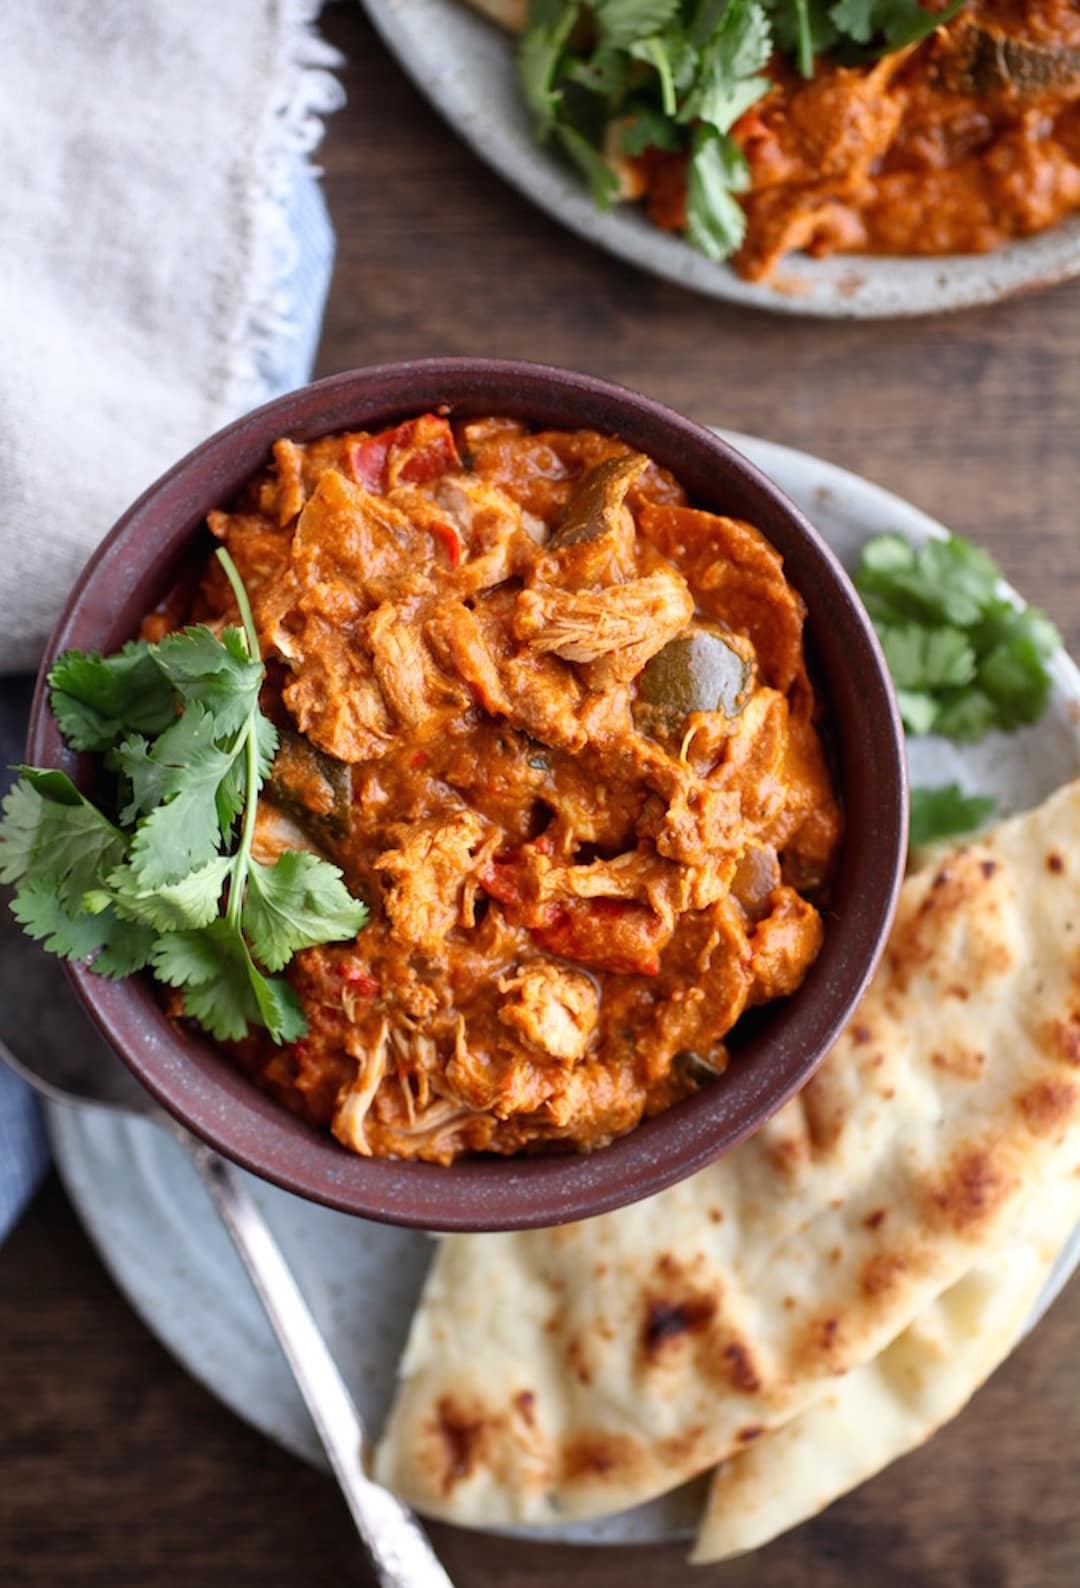 10 Terrific & Simple Healthy Fall Recipes - Dairy Free Butter Chicken Slow Cooker